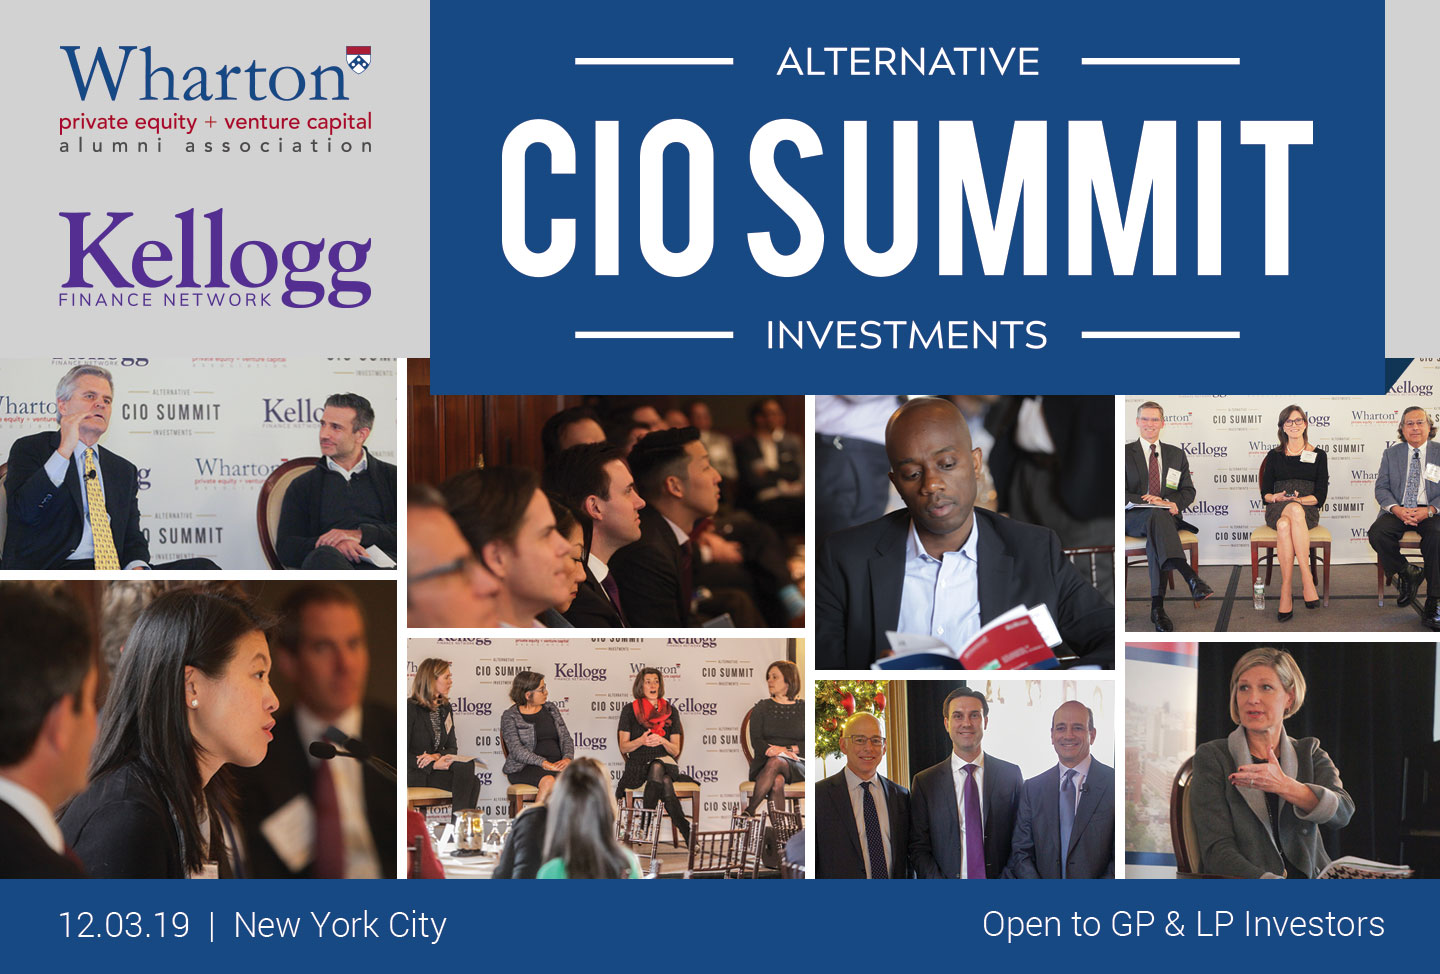 ciosummit2019_header_1440_v2a-full-colon